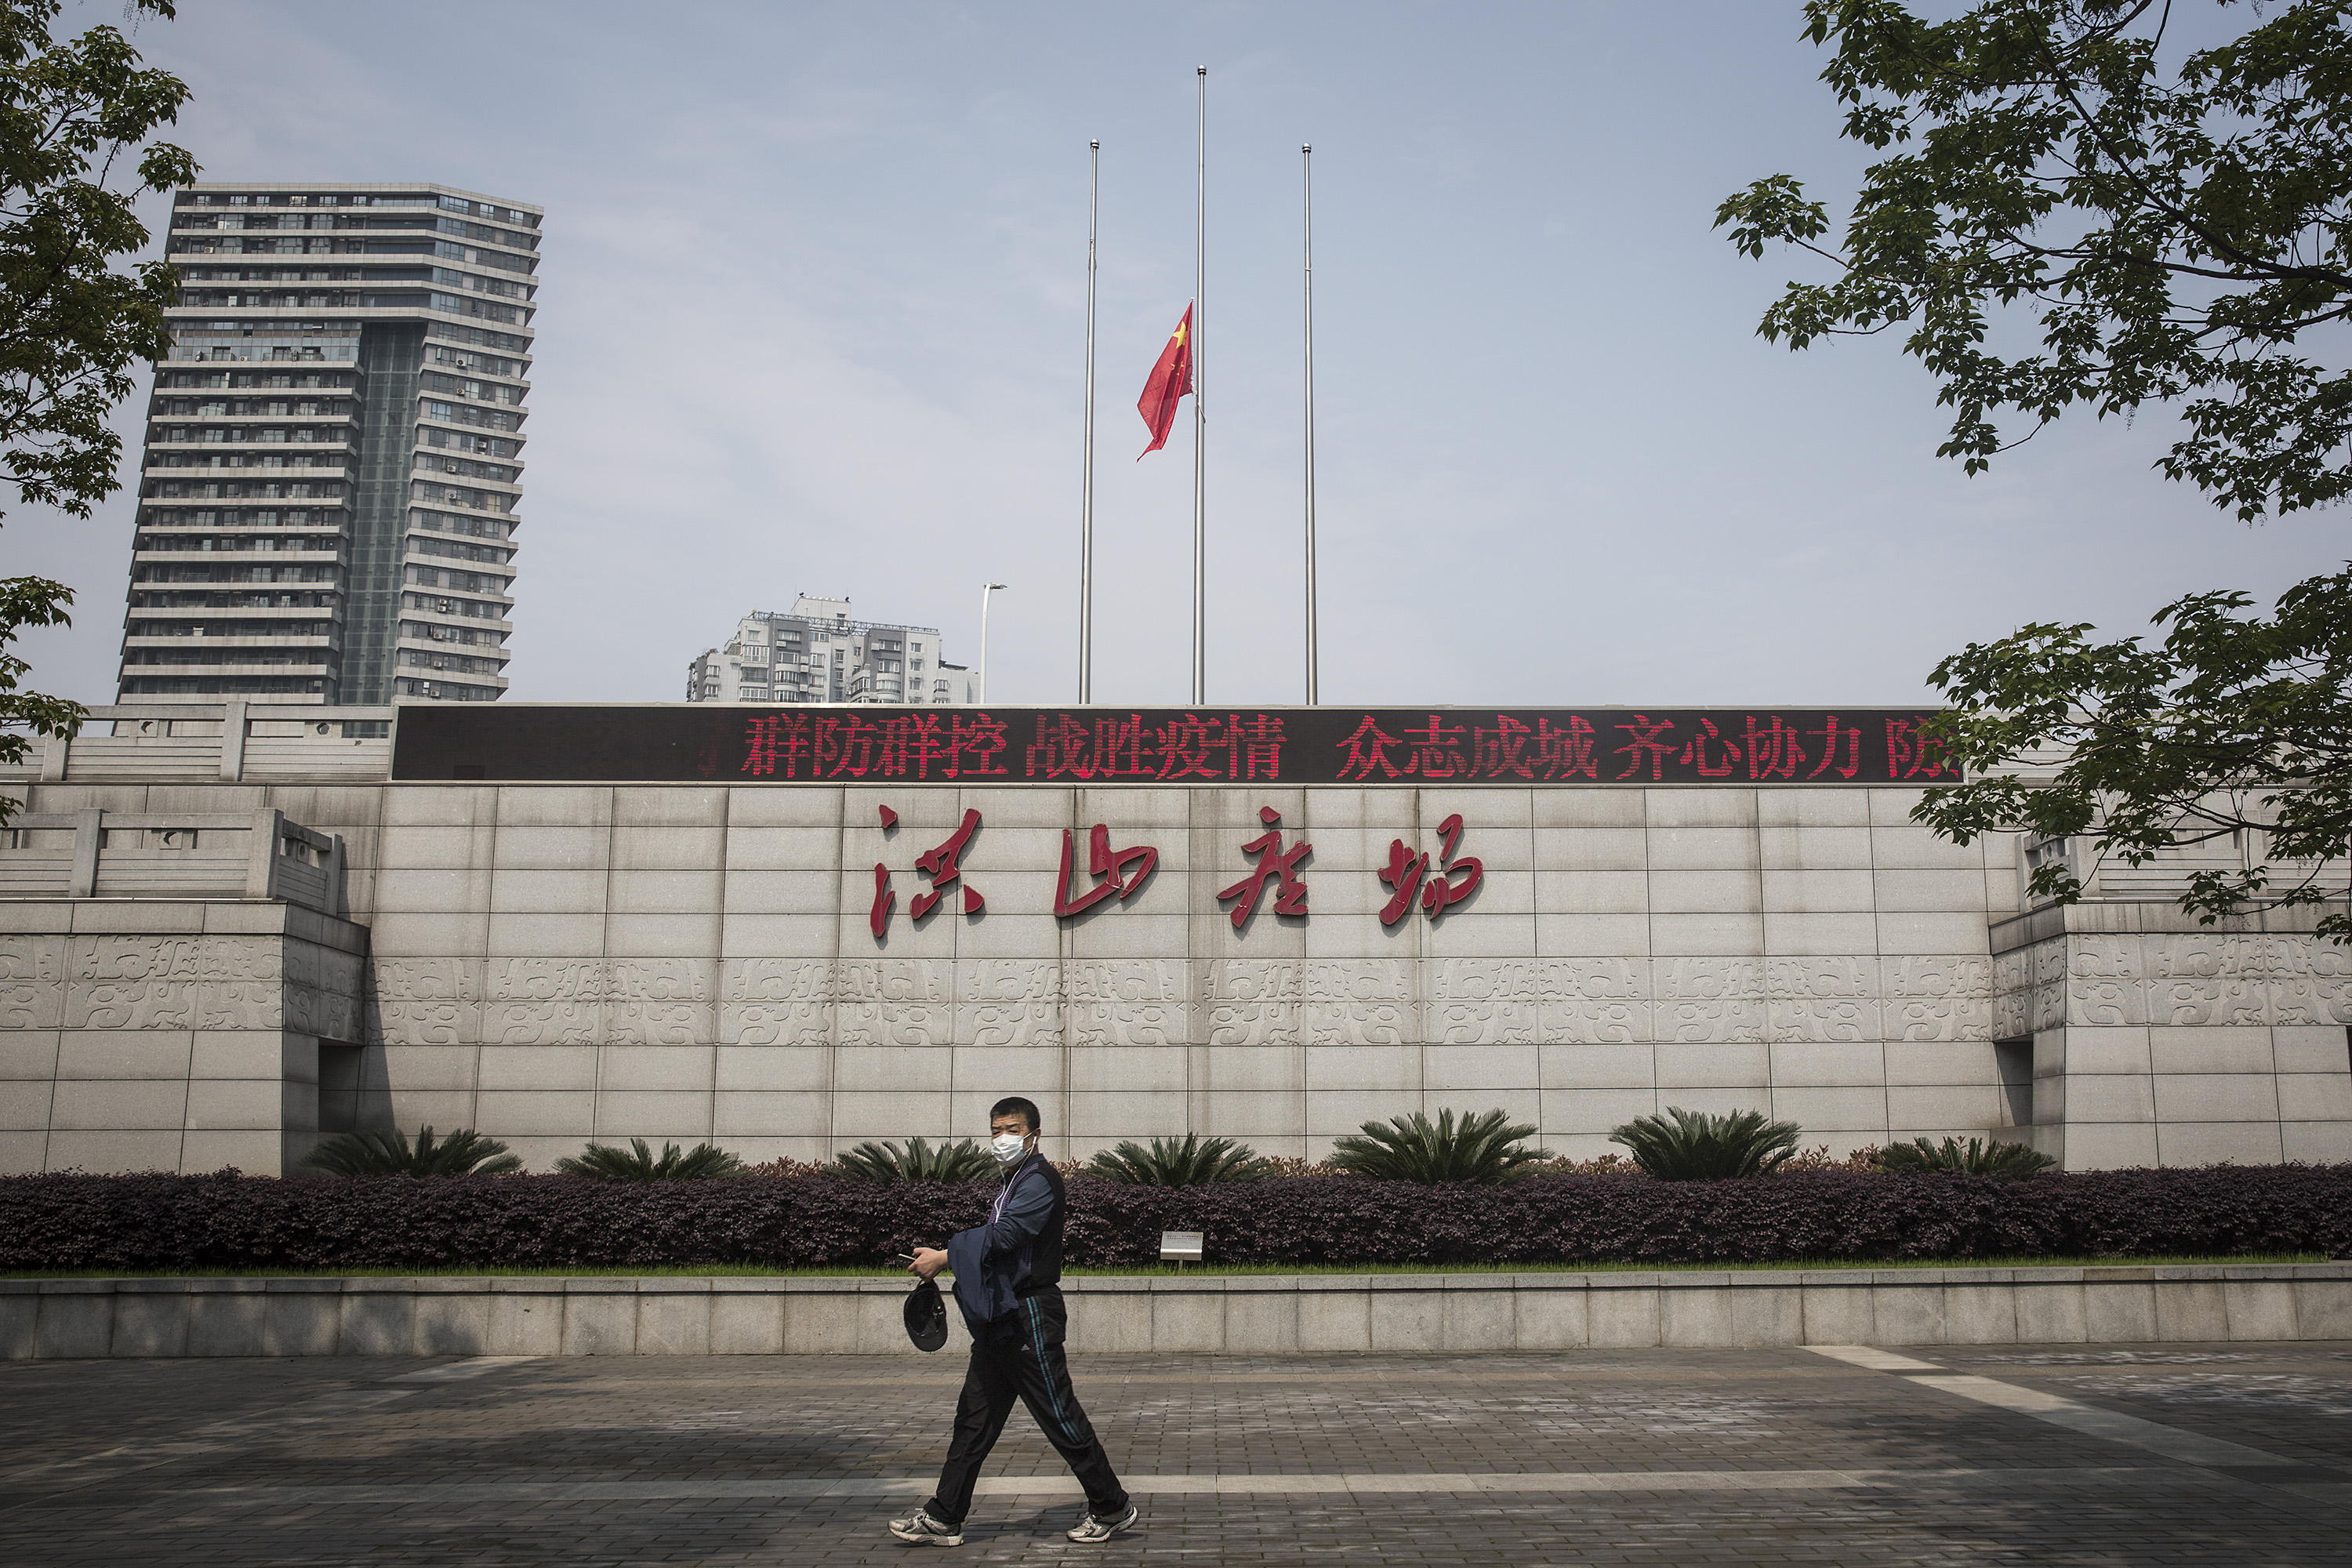 A resident passes in Hongshan square as Chinese national flag flies. (Photo by Getty Images)